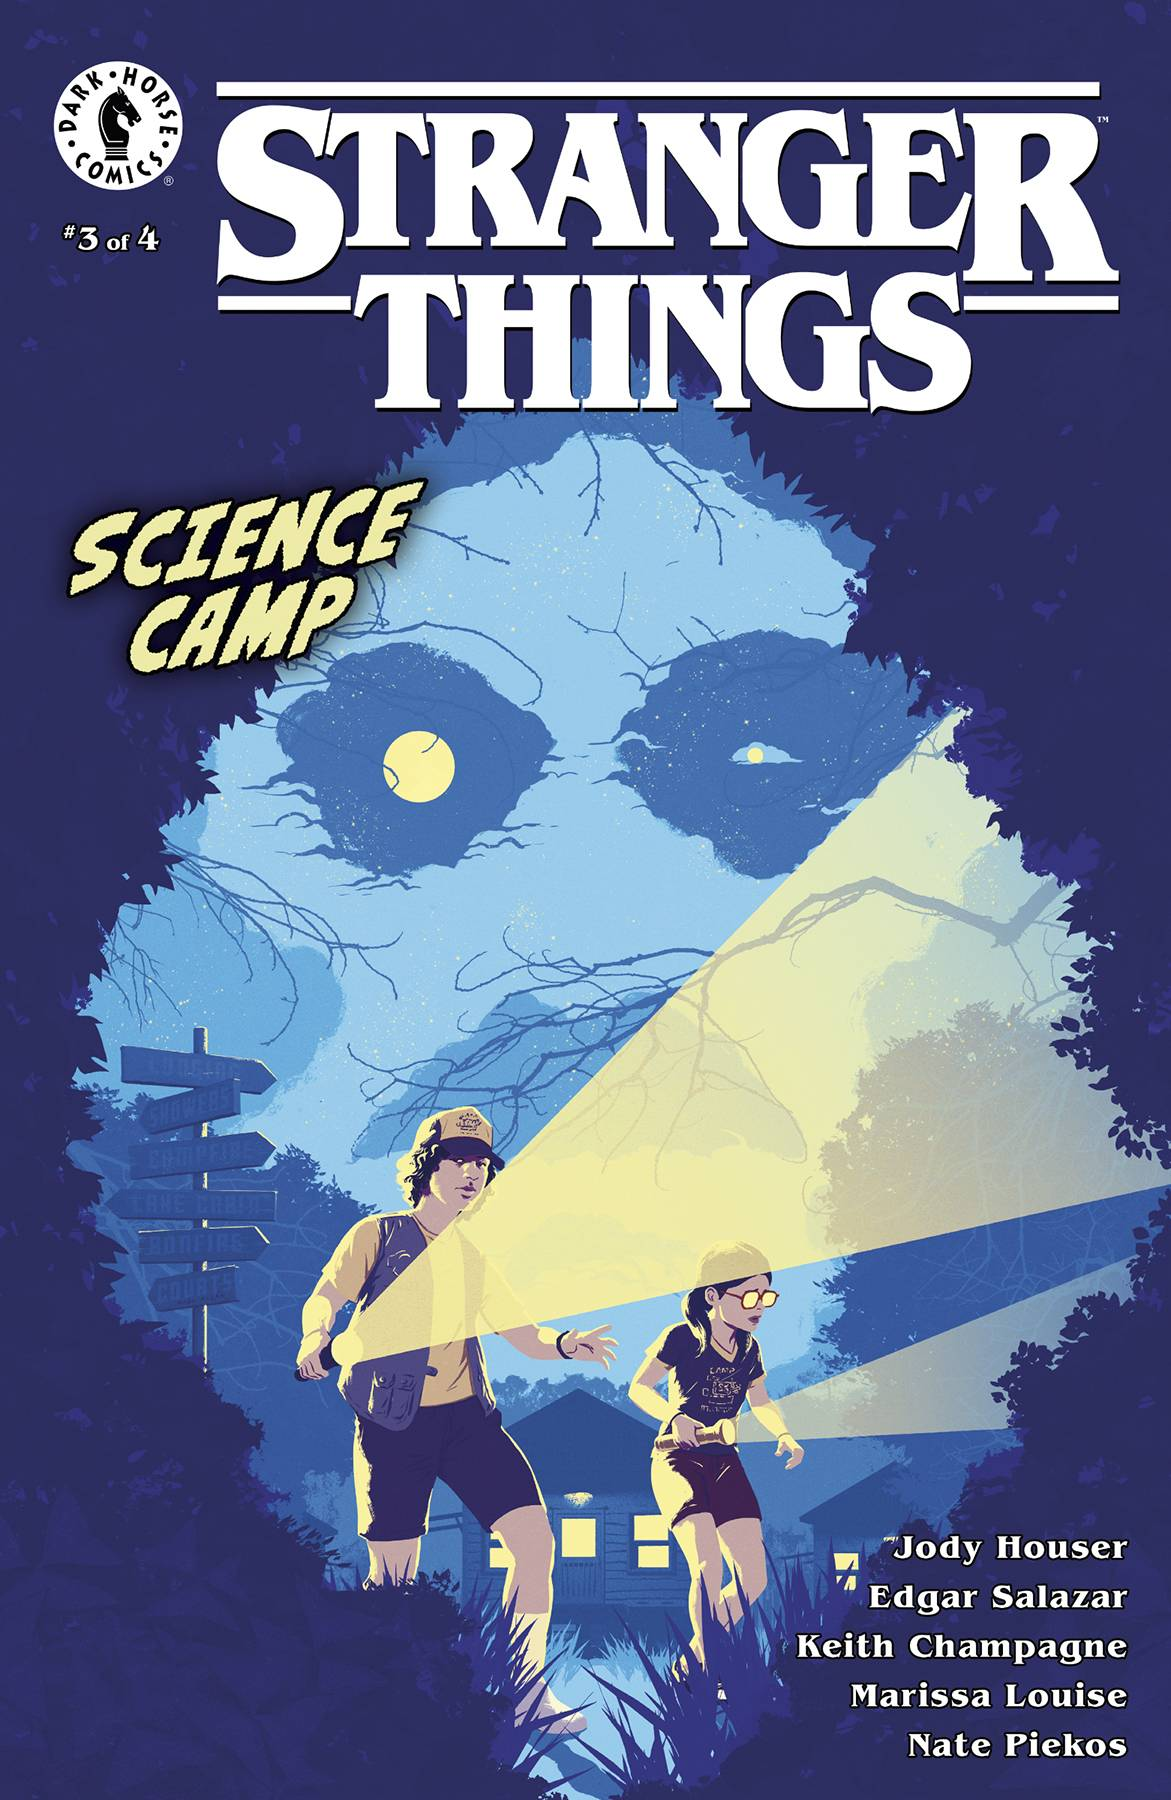 STRANGER THINGS SCIENCE CAMP